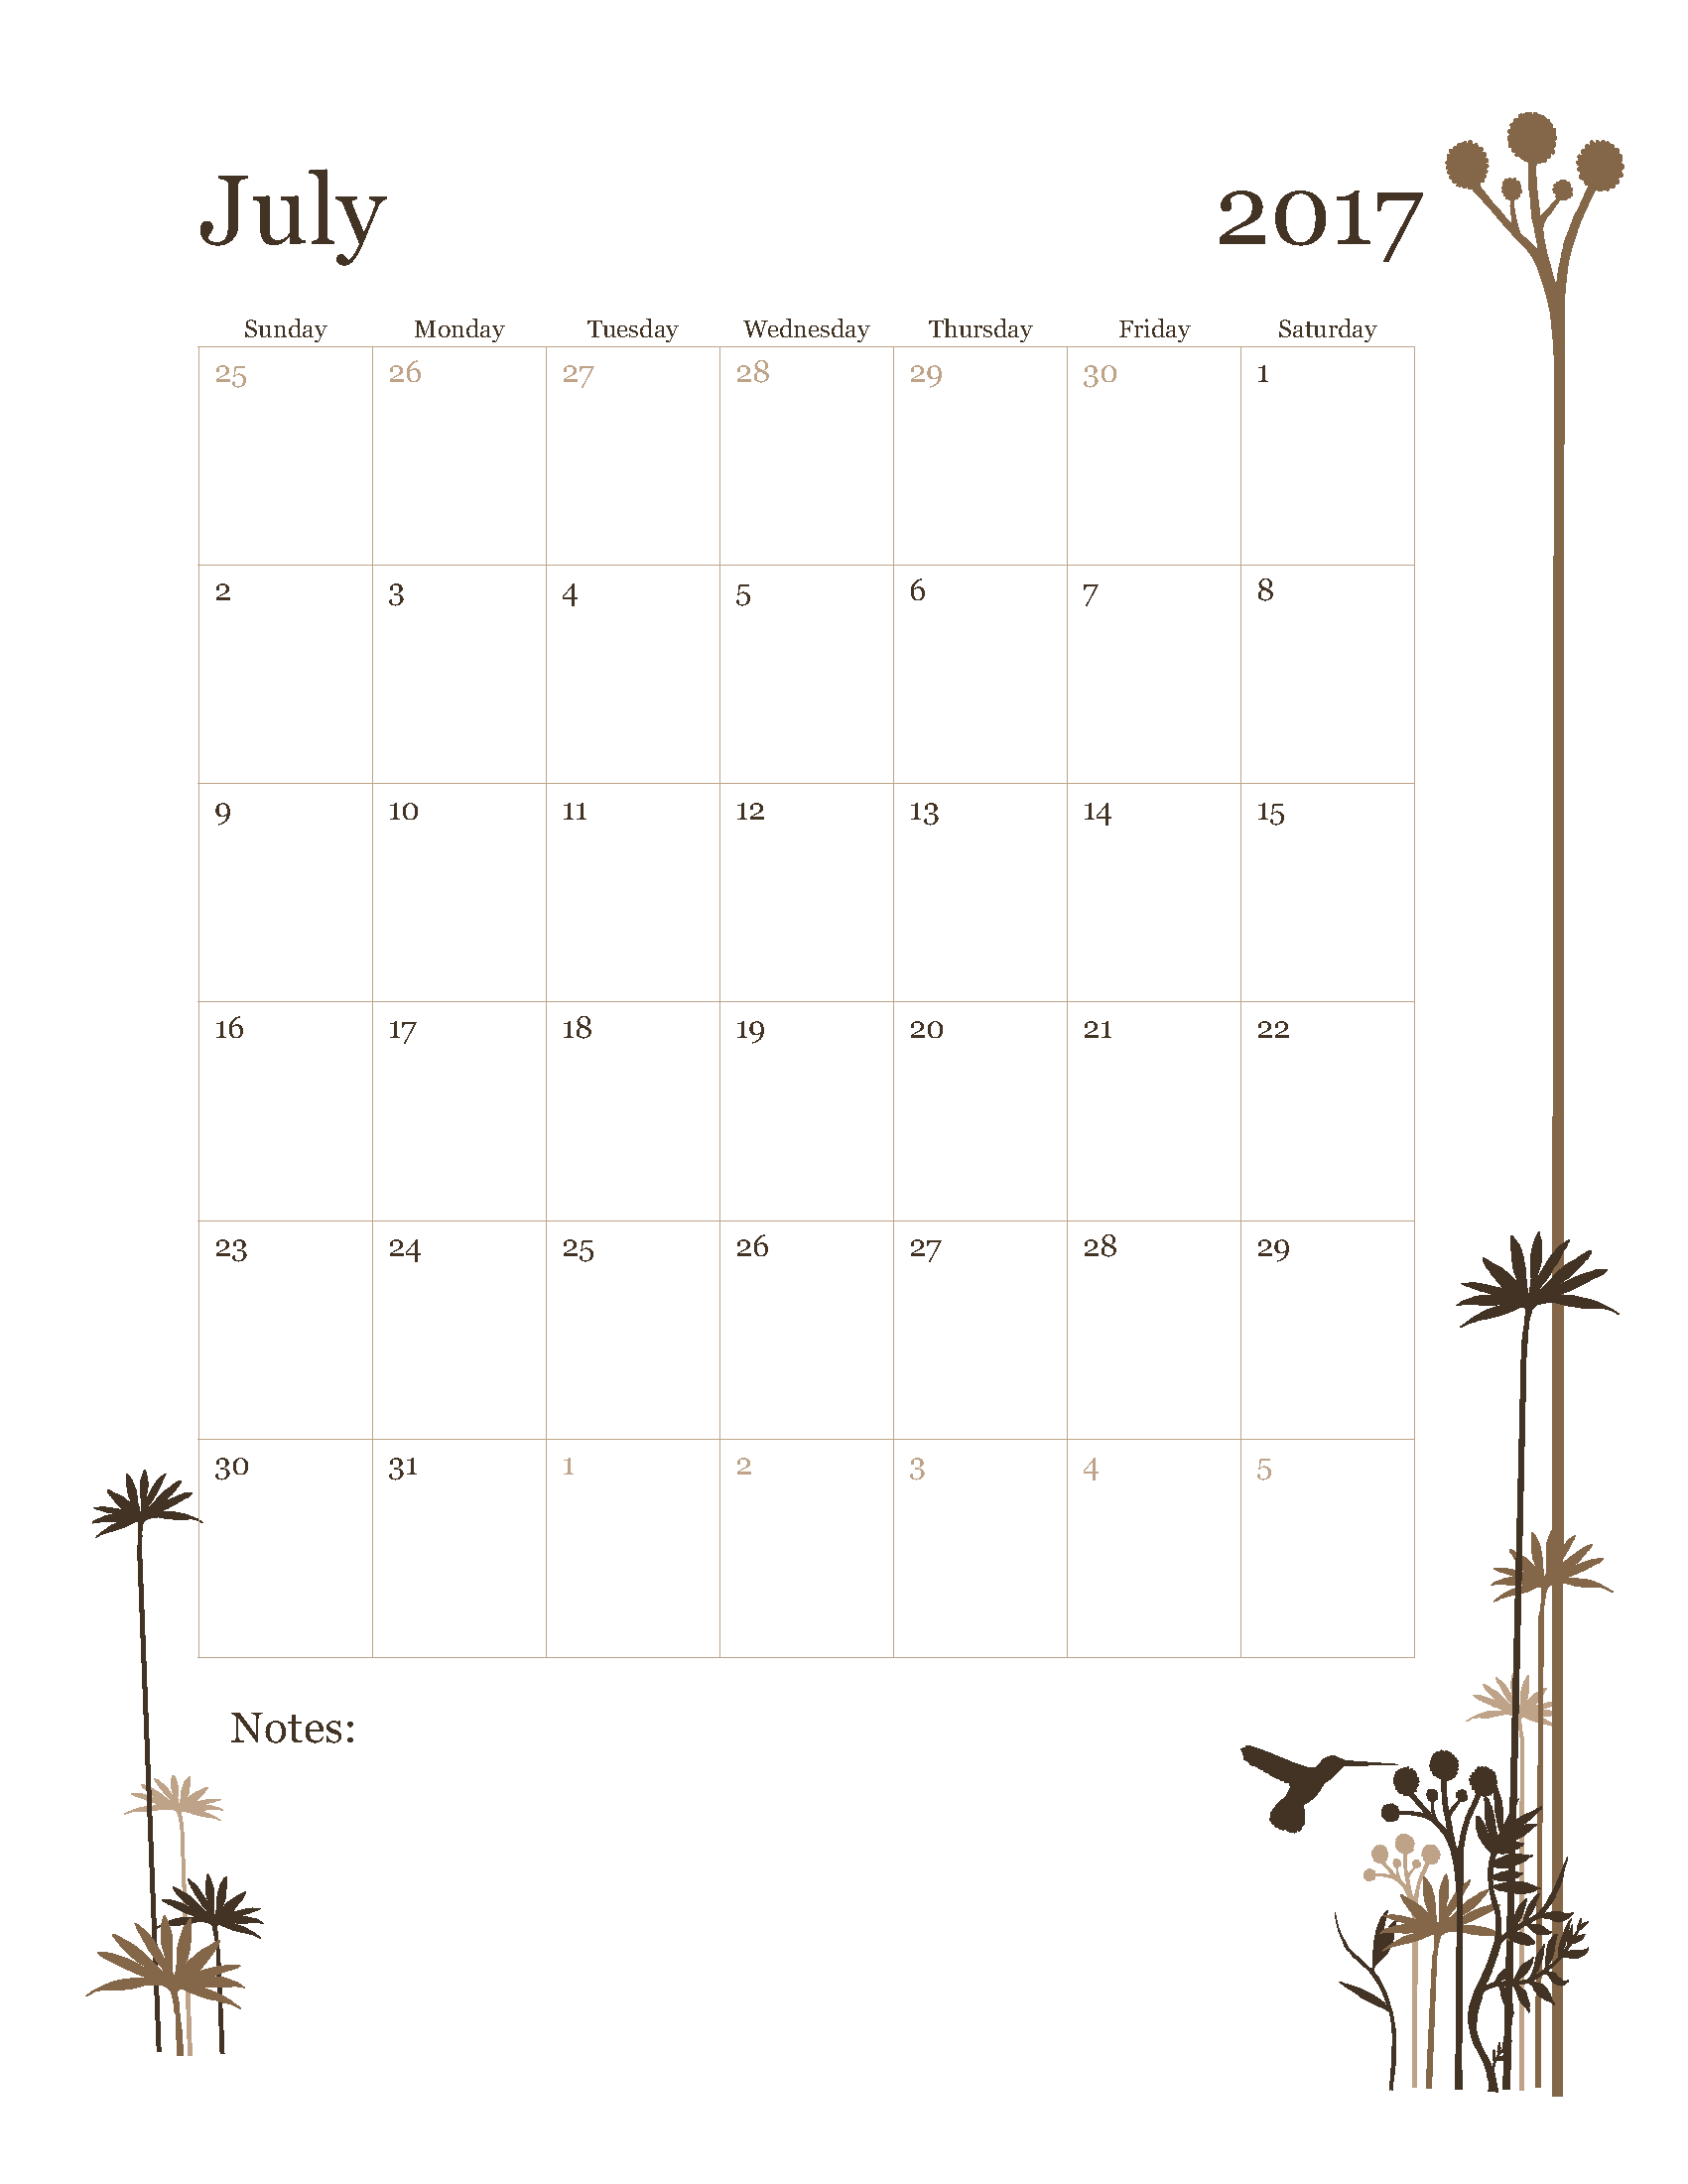 Free July 2017 Calendar Template Printable Start on Sunday - HummingBird design